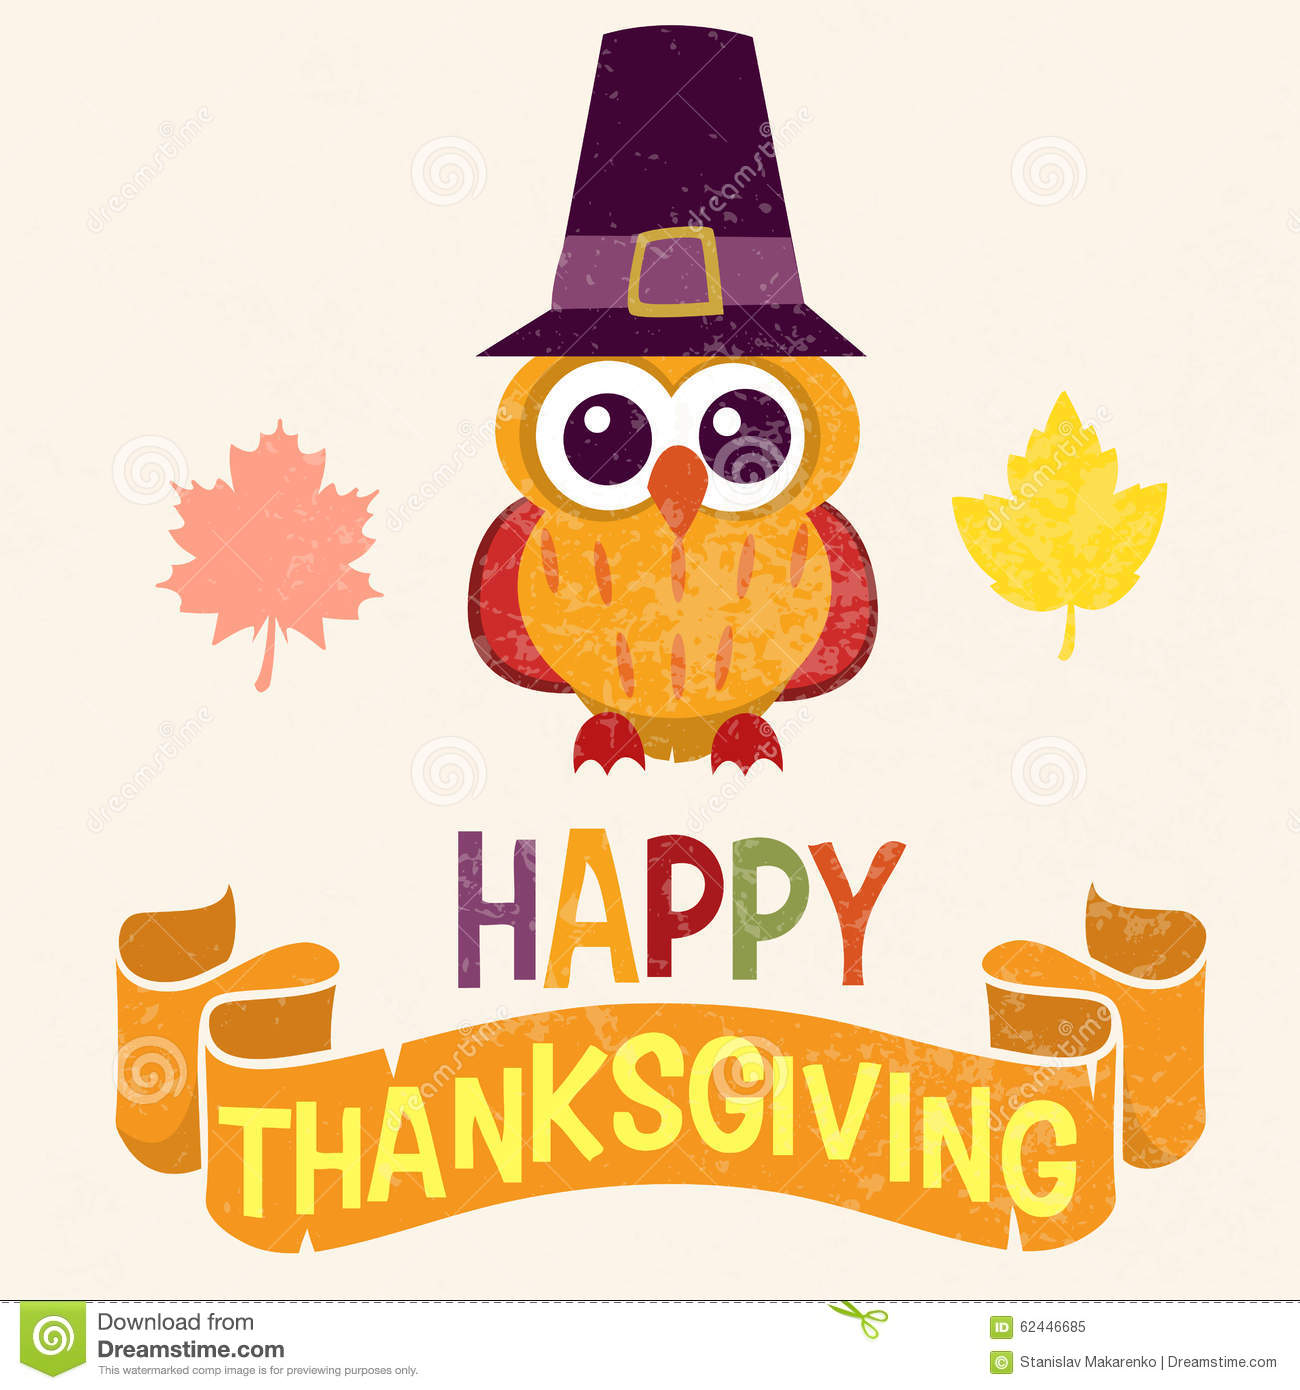 Retro Thanksgiving Day Card Design With Cute Little Owl In ...